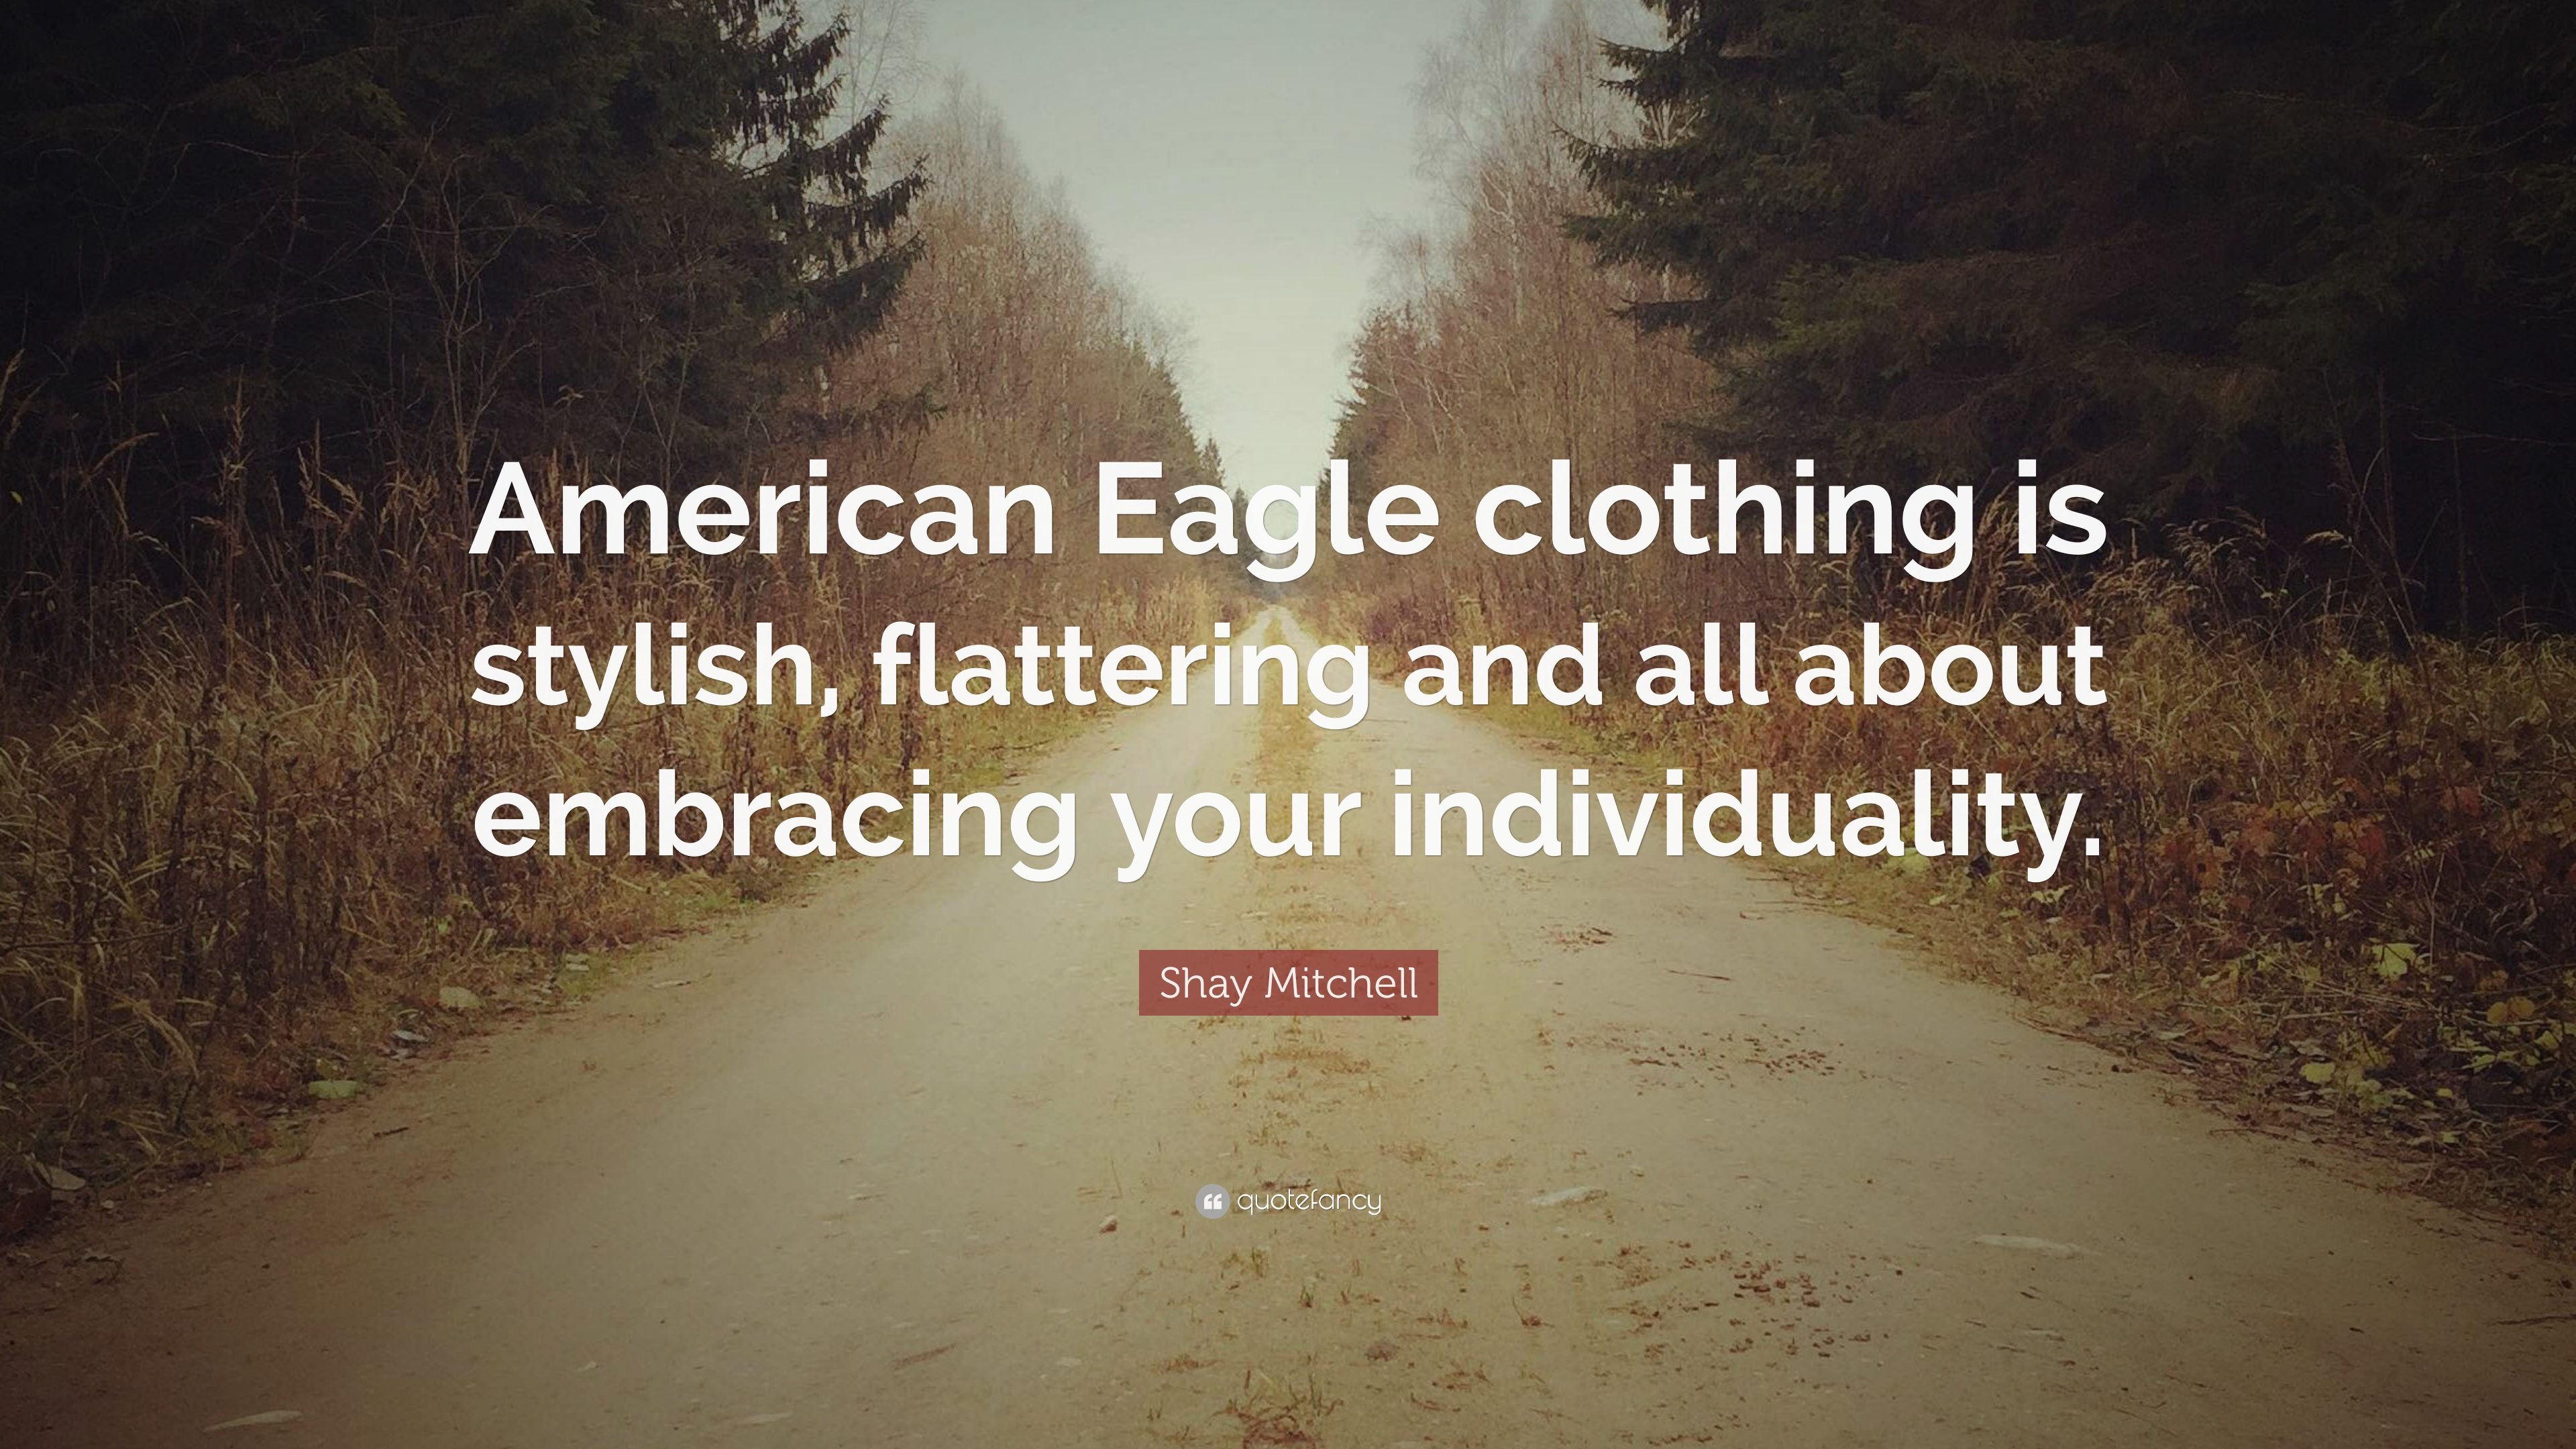 Shay Mitchell Quote American Eagle Clothing Is Stylish Flattering And All About Embracing